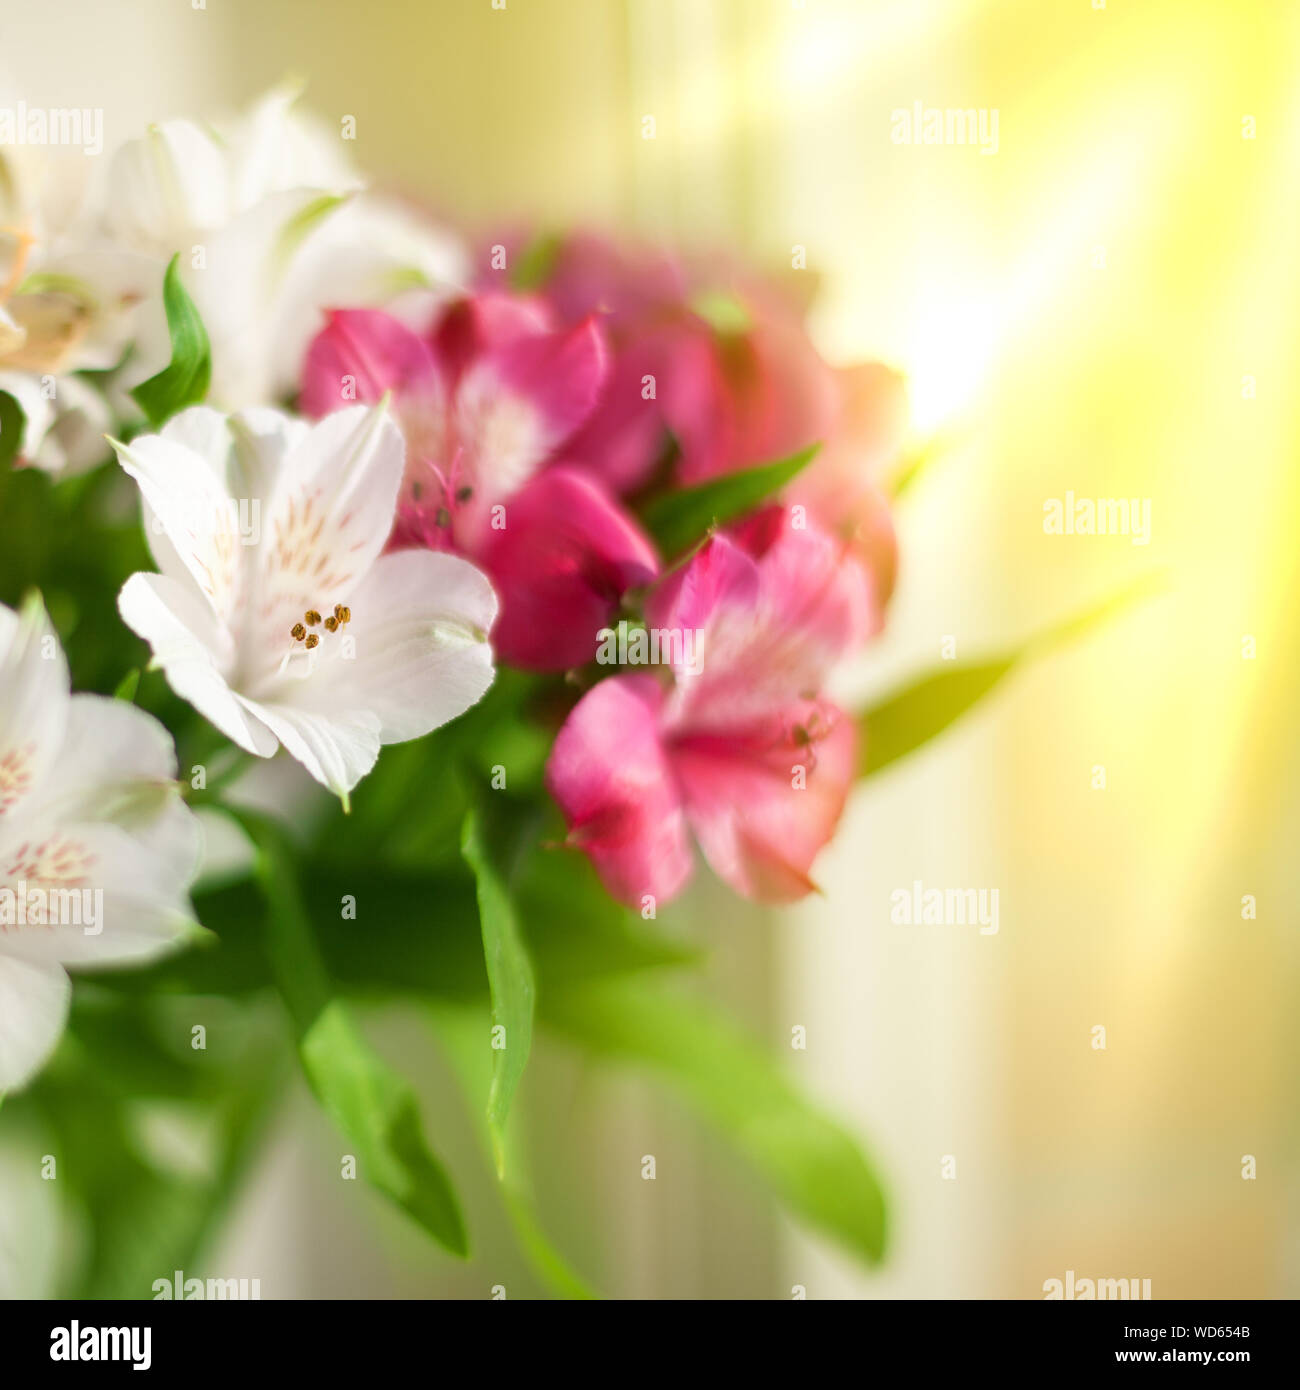 Morning Fresh Flower Lily High Resolution Stock Photography And Images Alamy